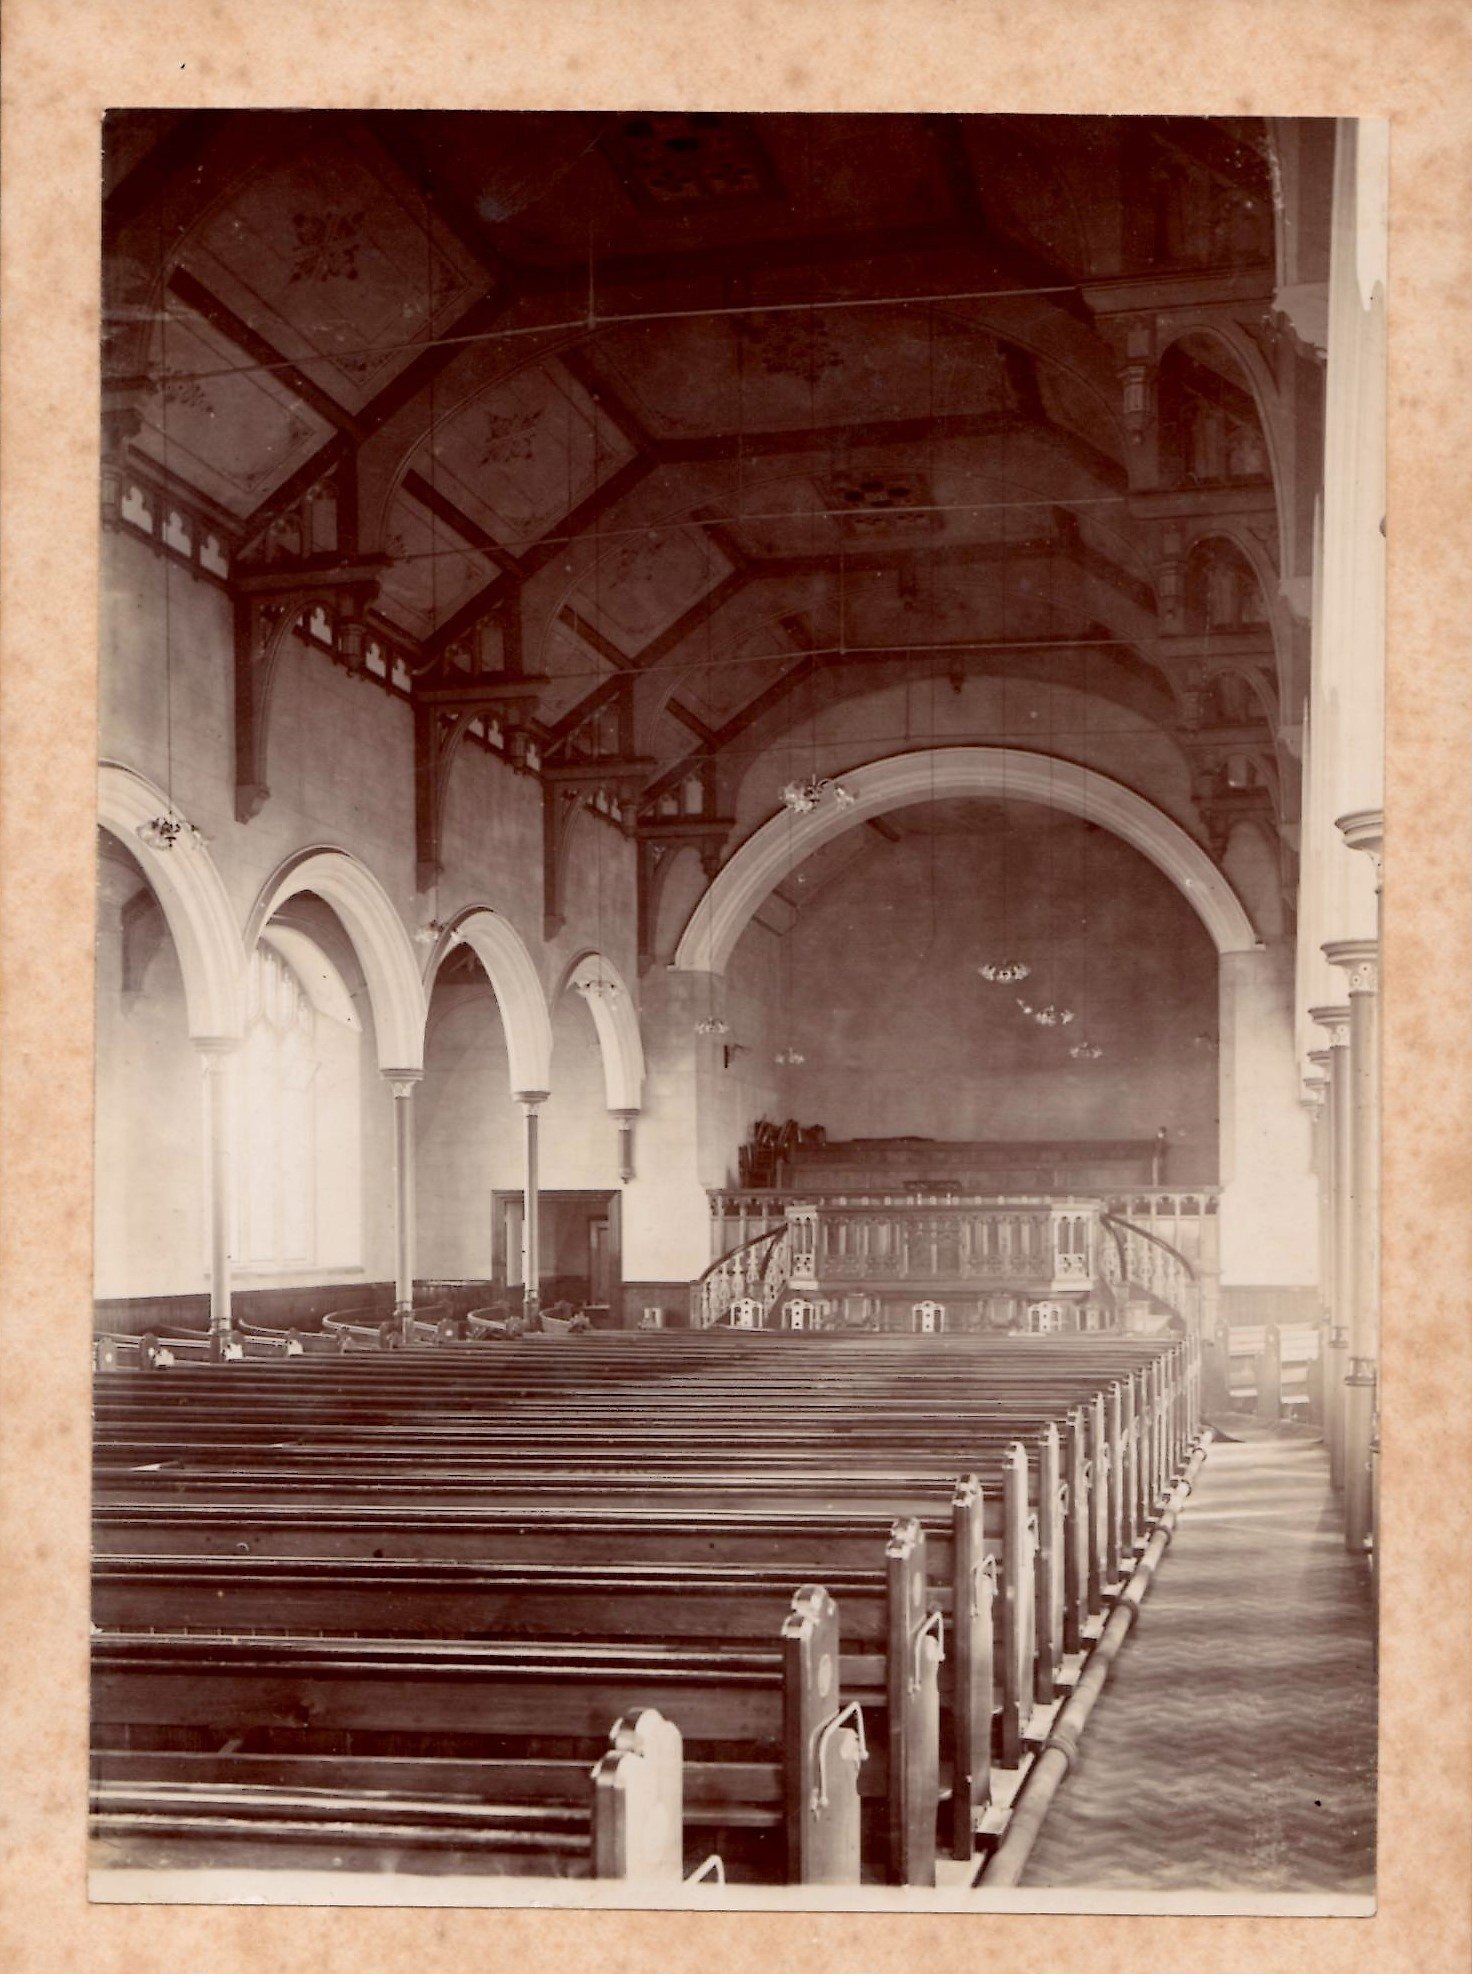 https://0201.nccdn.net/1_2/000/000/0c4/d5d/SRBC---The-Old-Church-Before-the-Organ-was-Installed-1472x1974.jpg